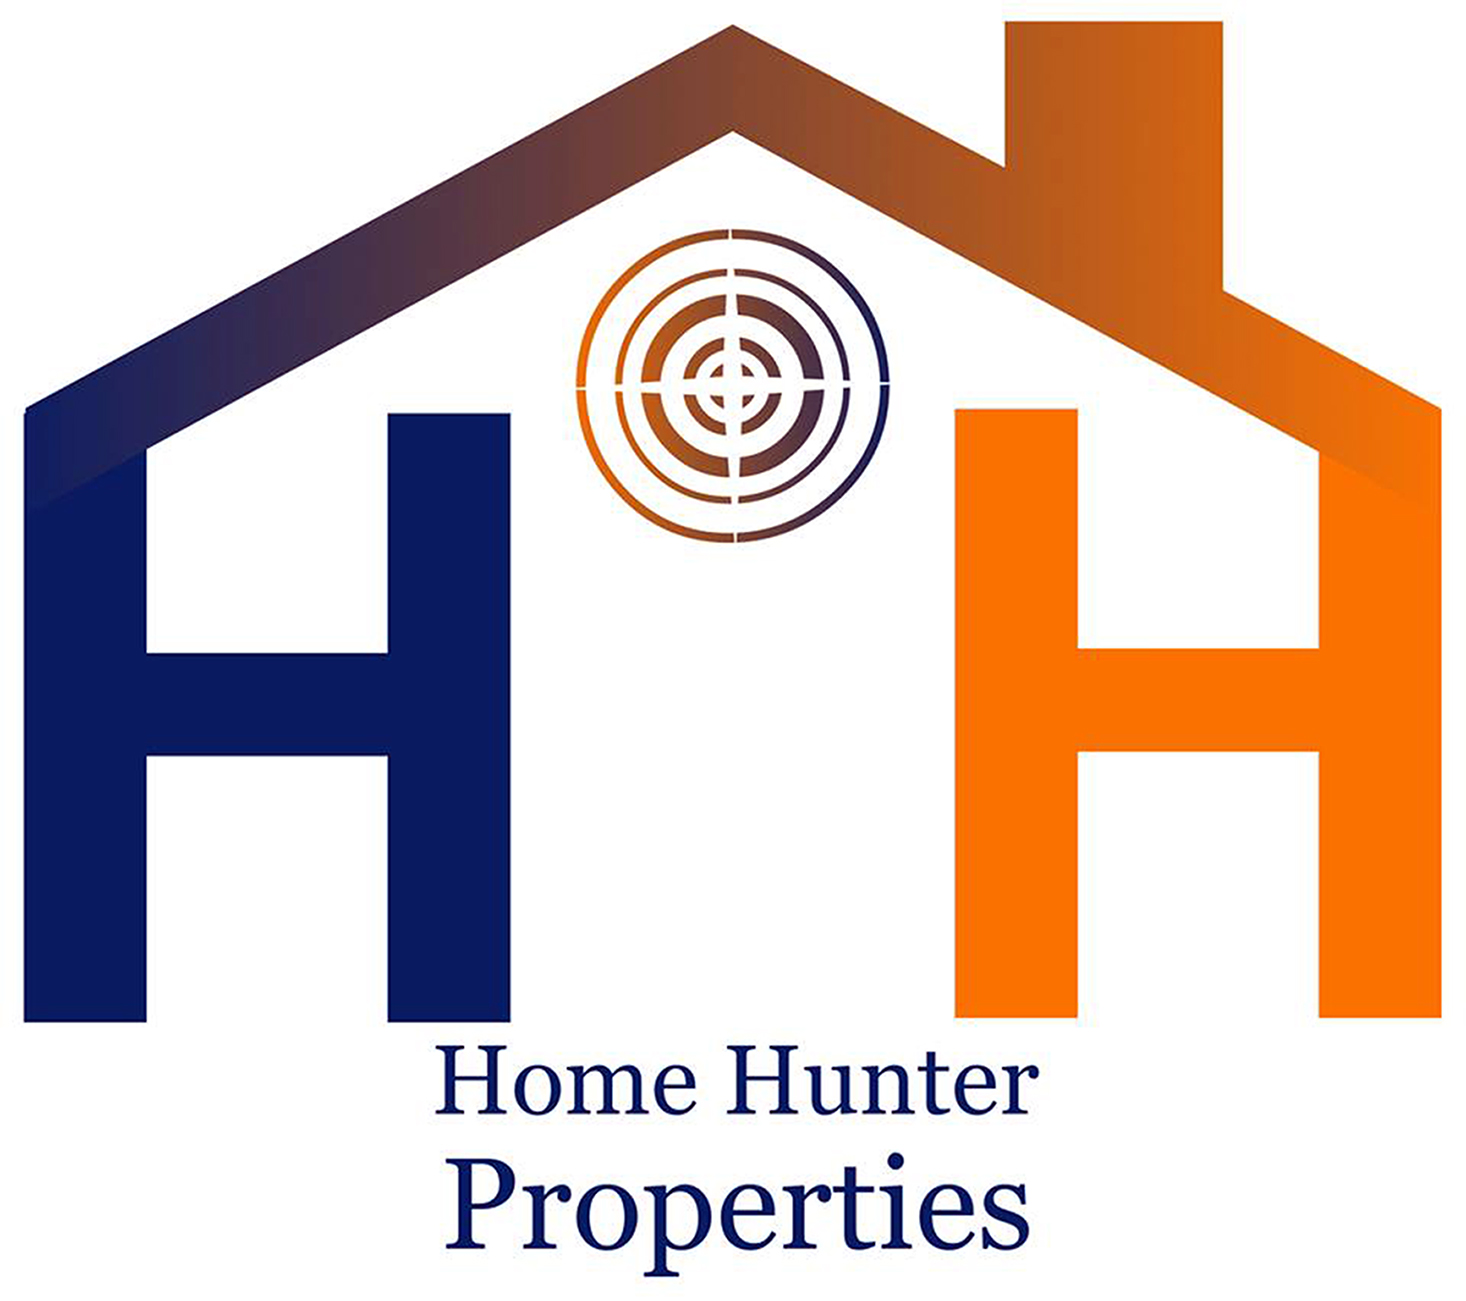 Home Hunter Properties